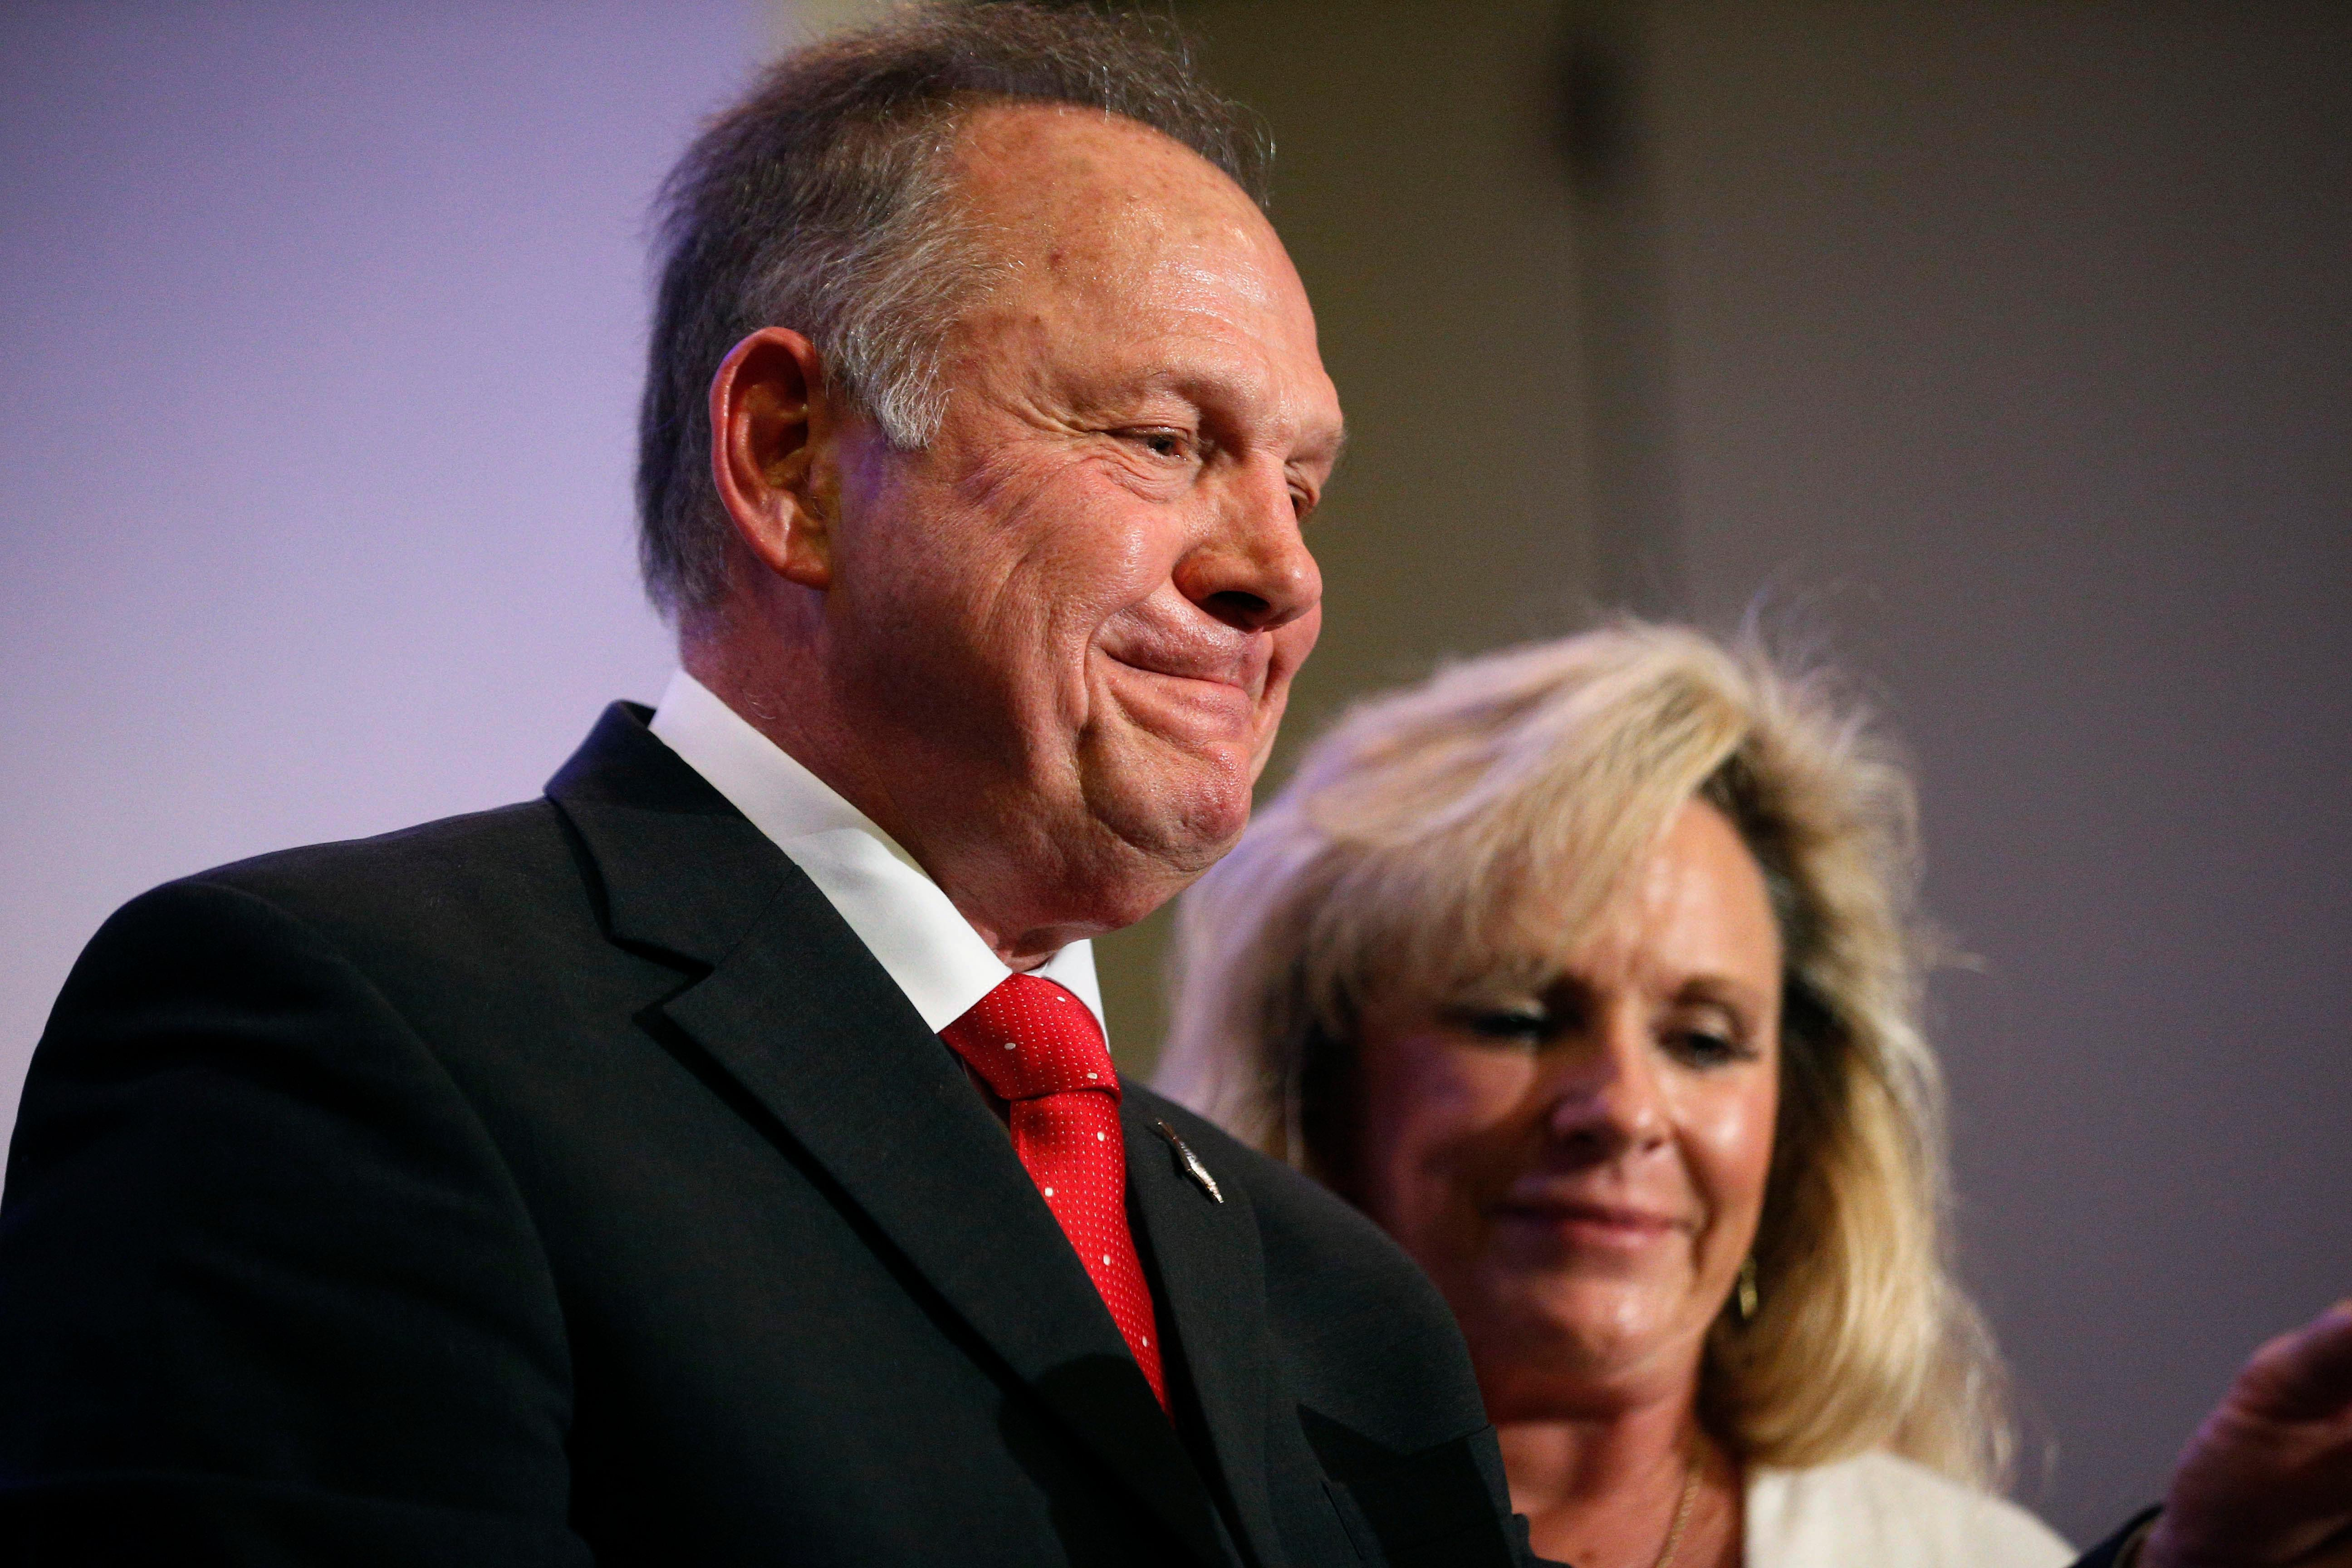 Former Alabama Chief Justice and U.S. Senate candidate Roy Moore speaks at a news conference, Thursday, Nov. 16, 2017, in Birmingham, Ala., with his wife Kayla Moore, right. (AP Photo/Brynn Anderson)